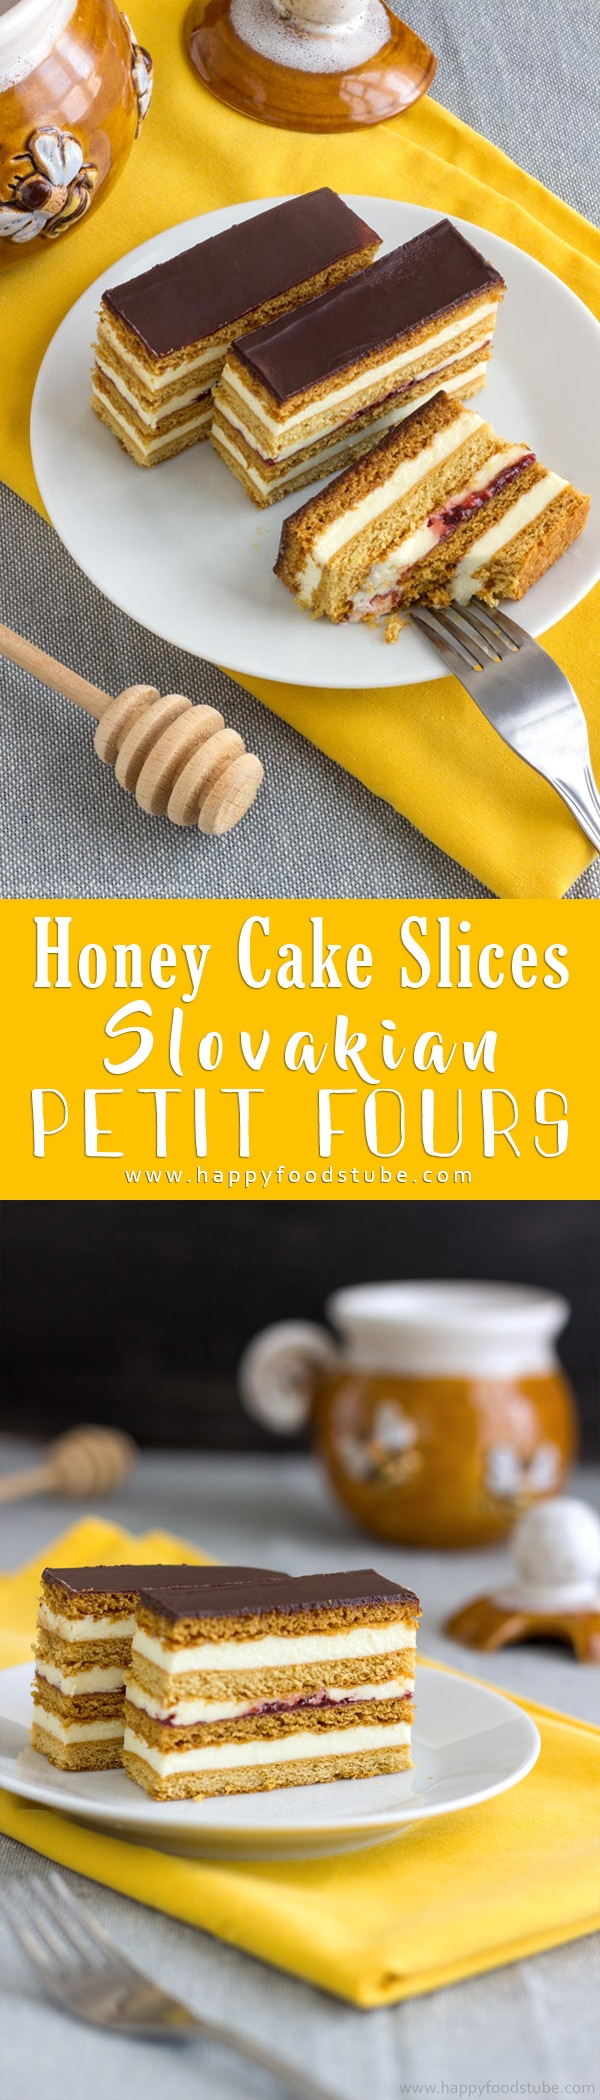 Rich & Creamy Petit Fours Recipe. Thin Layers of baked honey flavored pastry are filled with pudding filling, jam and finished off with a coat of chocolate glaze. #petitfours #honeycake #chocolate #desserts #baking #howtomake #slovakian #cakes #recipes